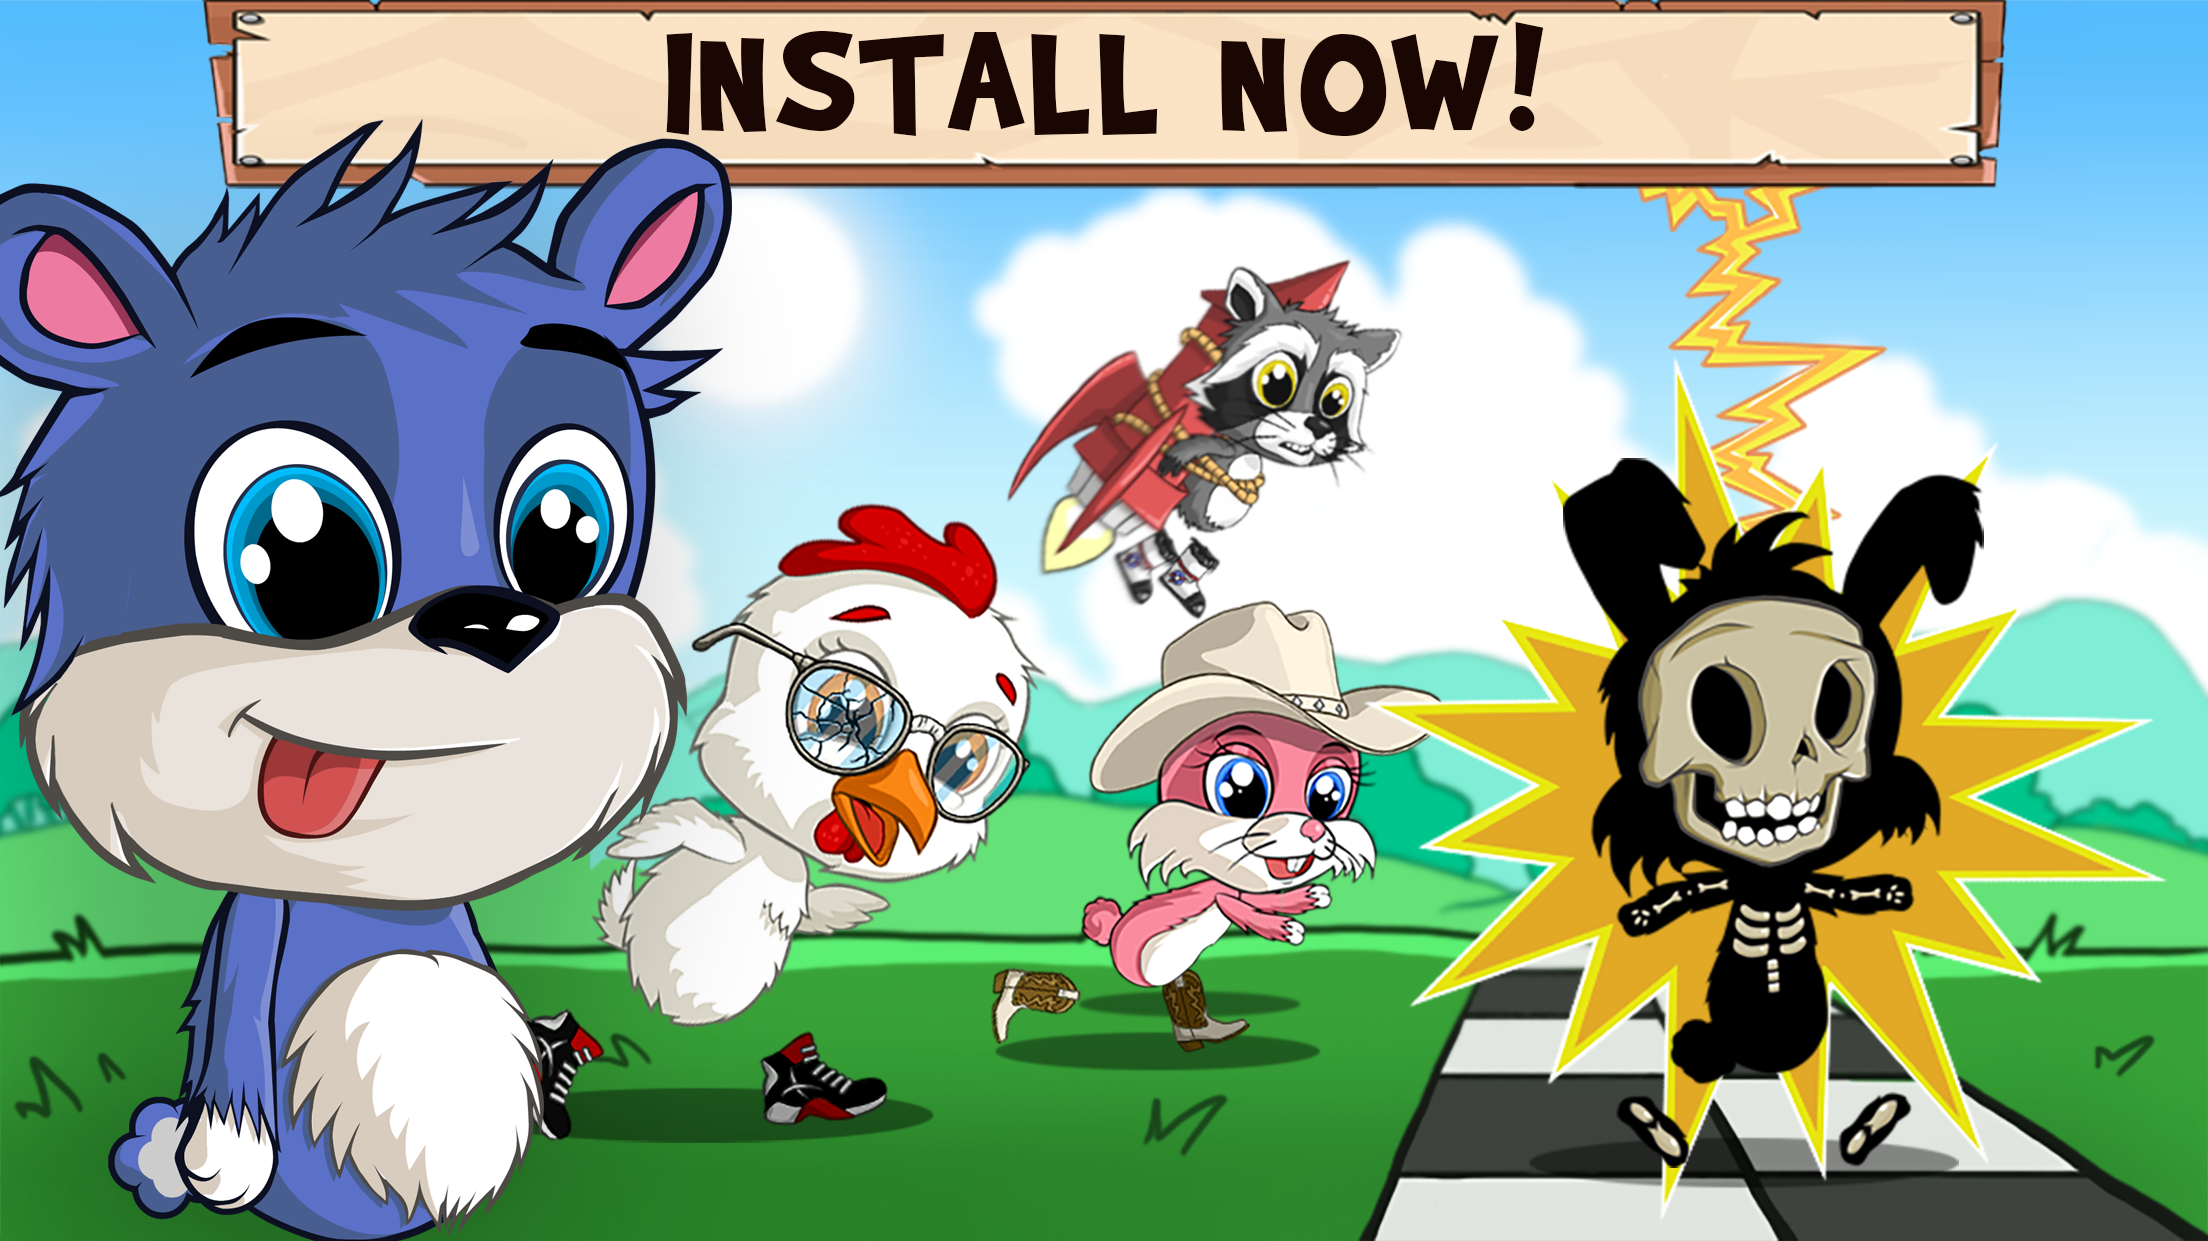 Fun Run 2 Mod APK (Unlimited Money/Mod) For Android 7